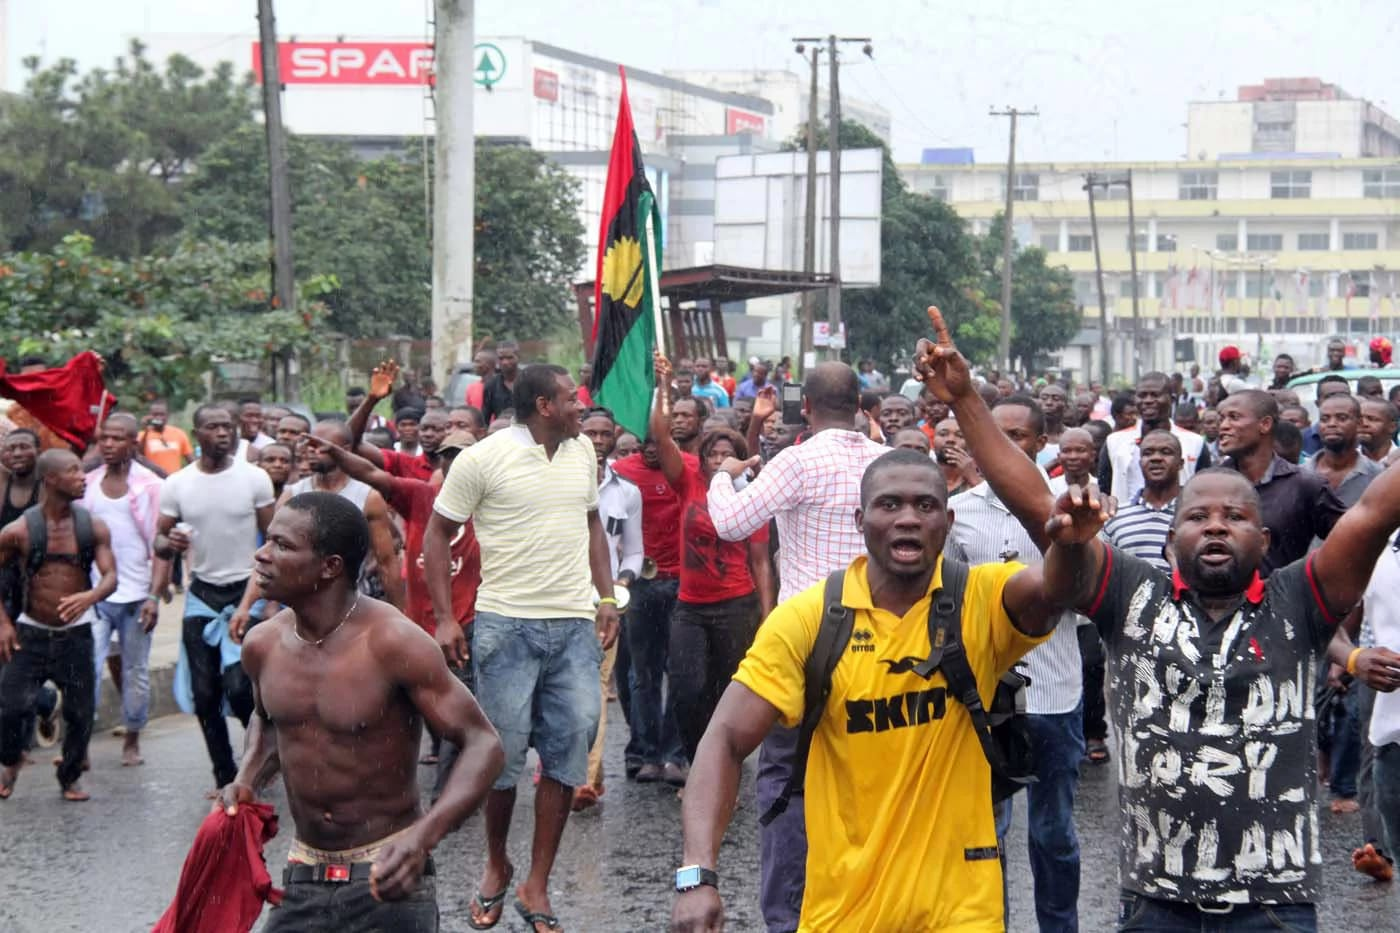 Biafra National Guard Sends Scary Message To Army - We Have Prepared Our Mind To Die